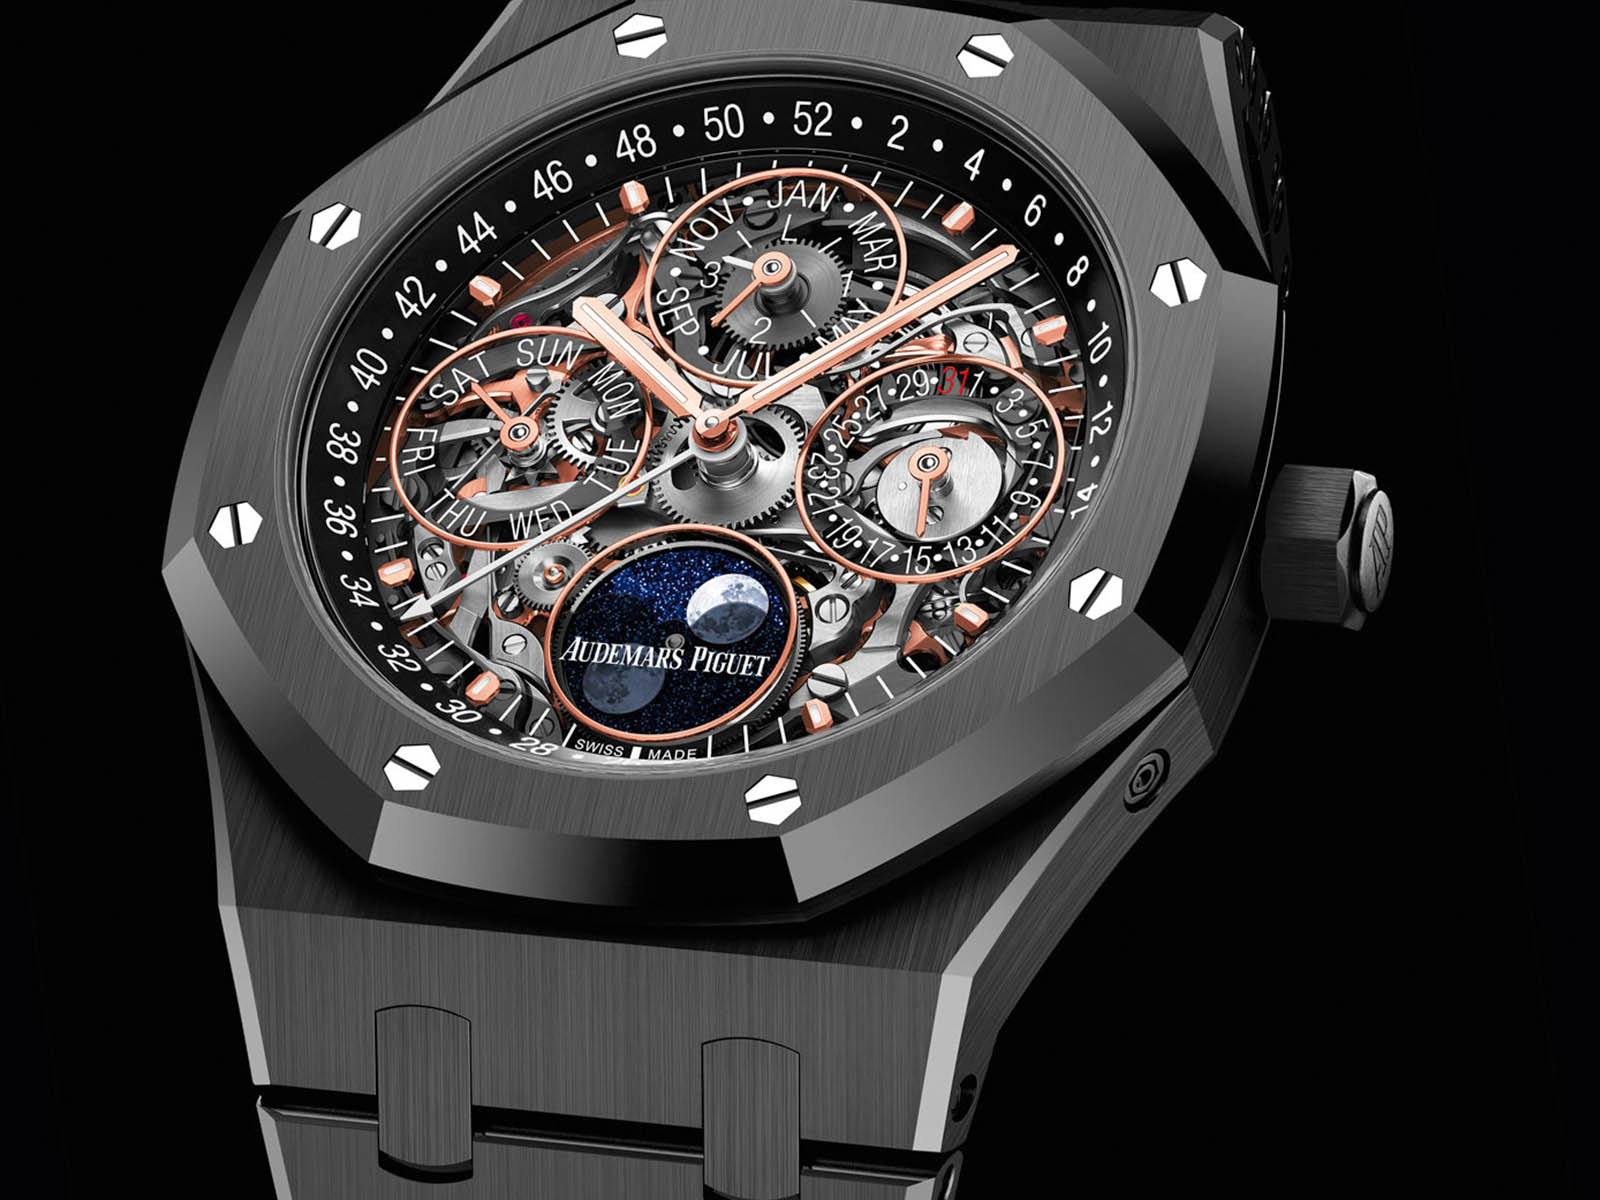 audemars-piguet-royal-oak-perpetual-calendar-ceramic-4.jpg